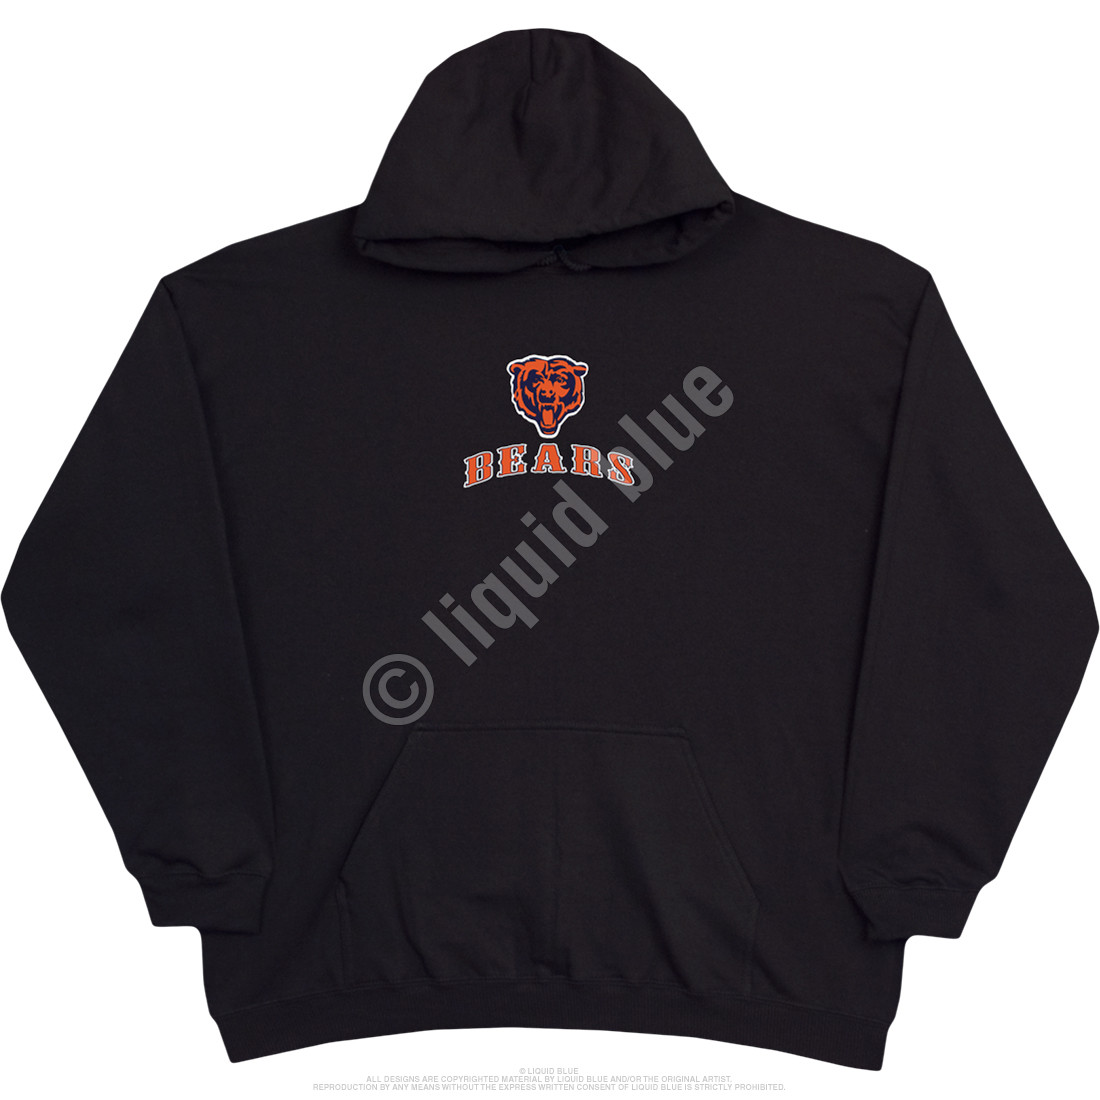 Chicago Bears Running Back Black Hoodie